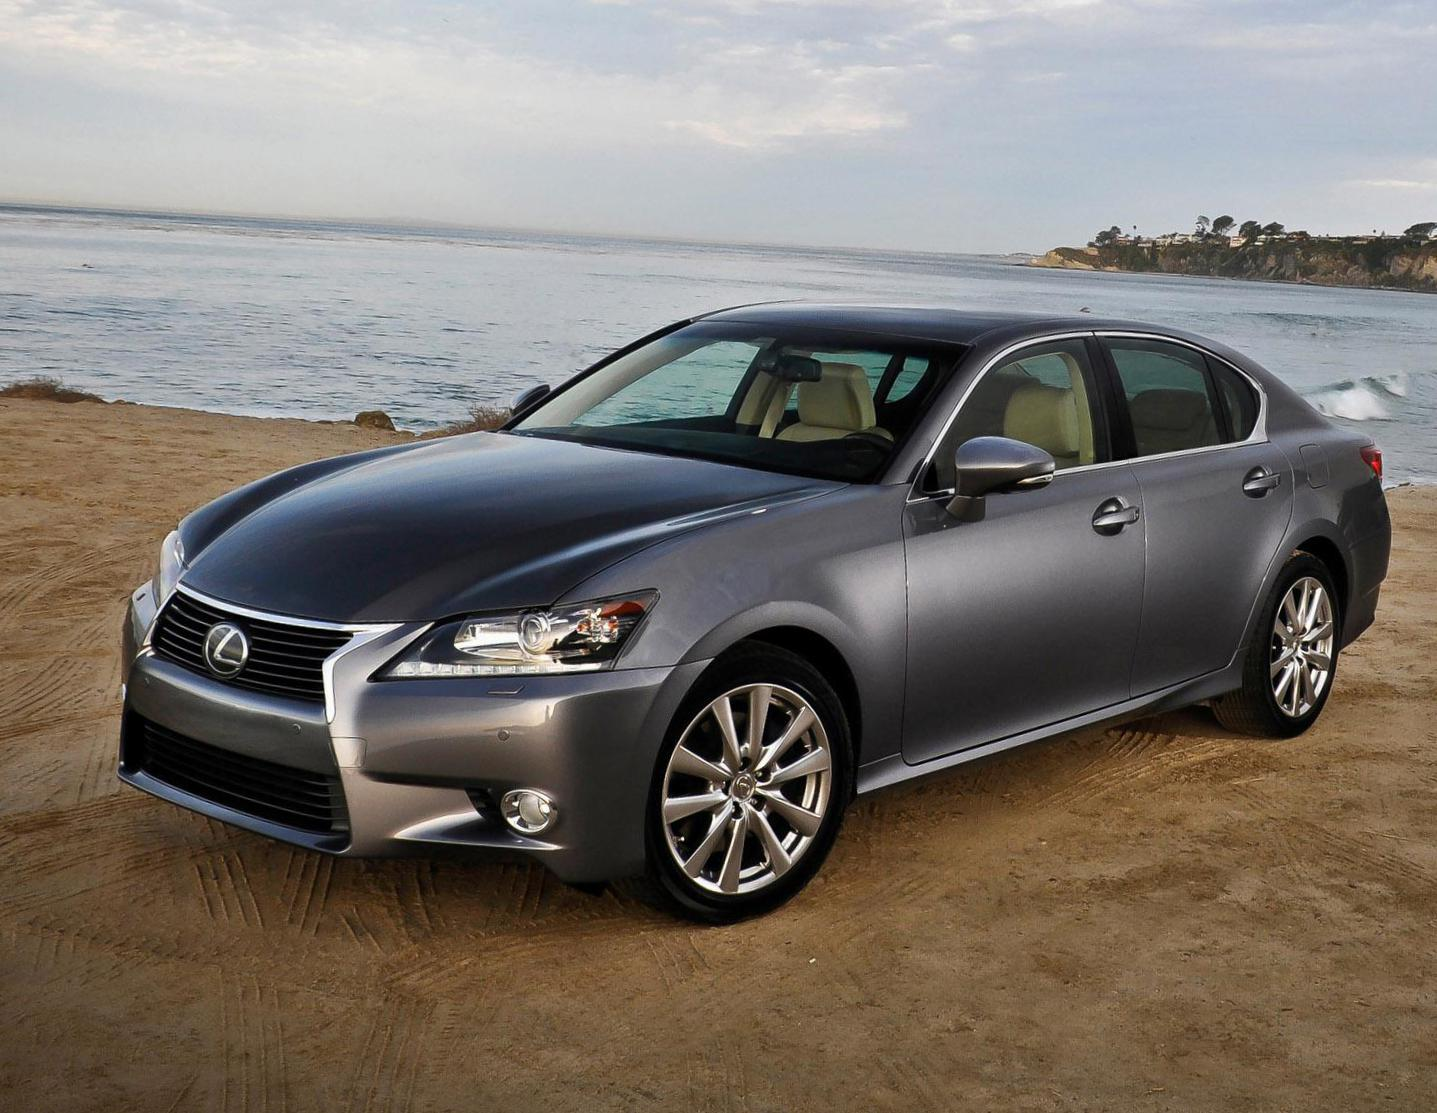 IS 250 Lexus tuning coupe